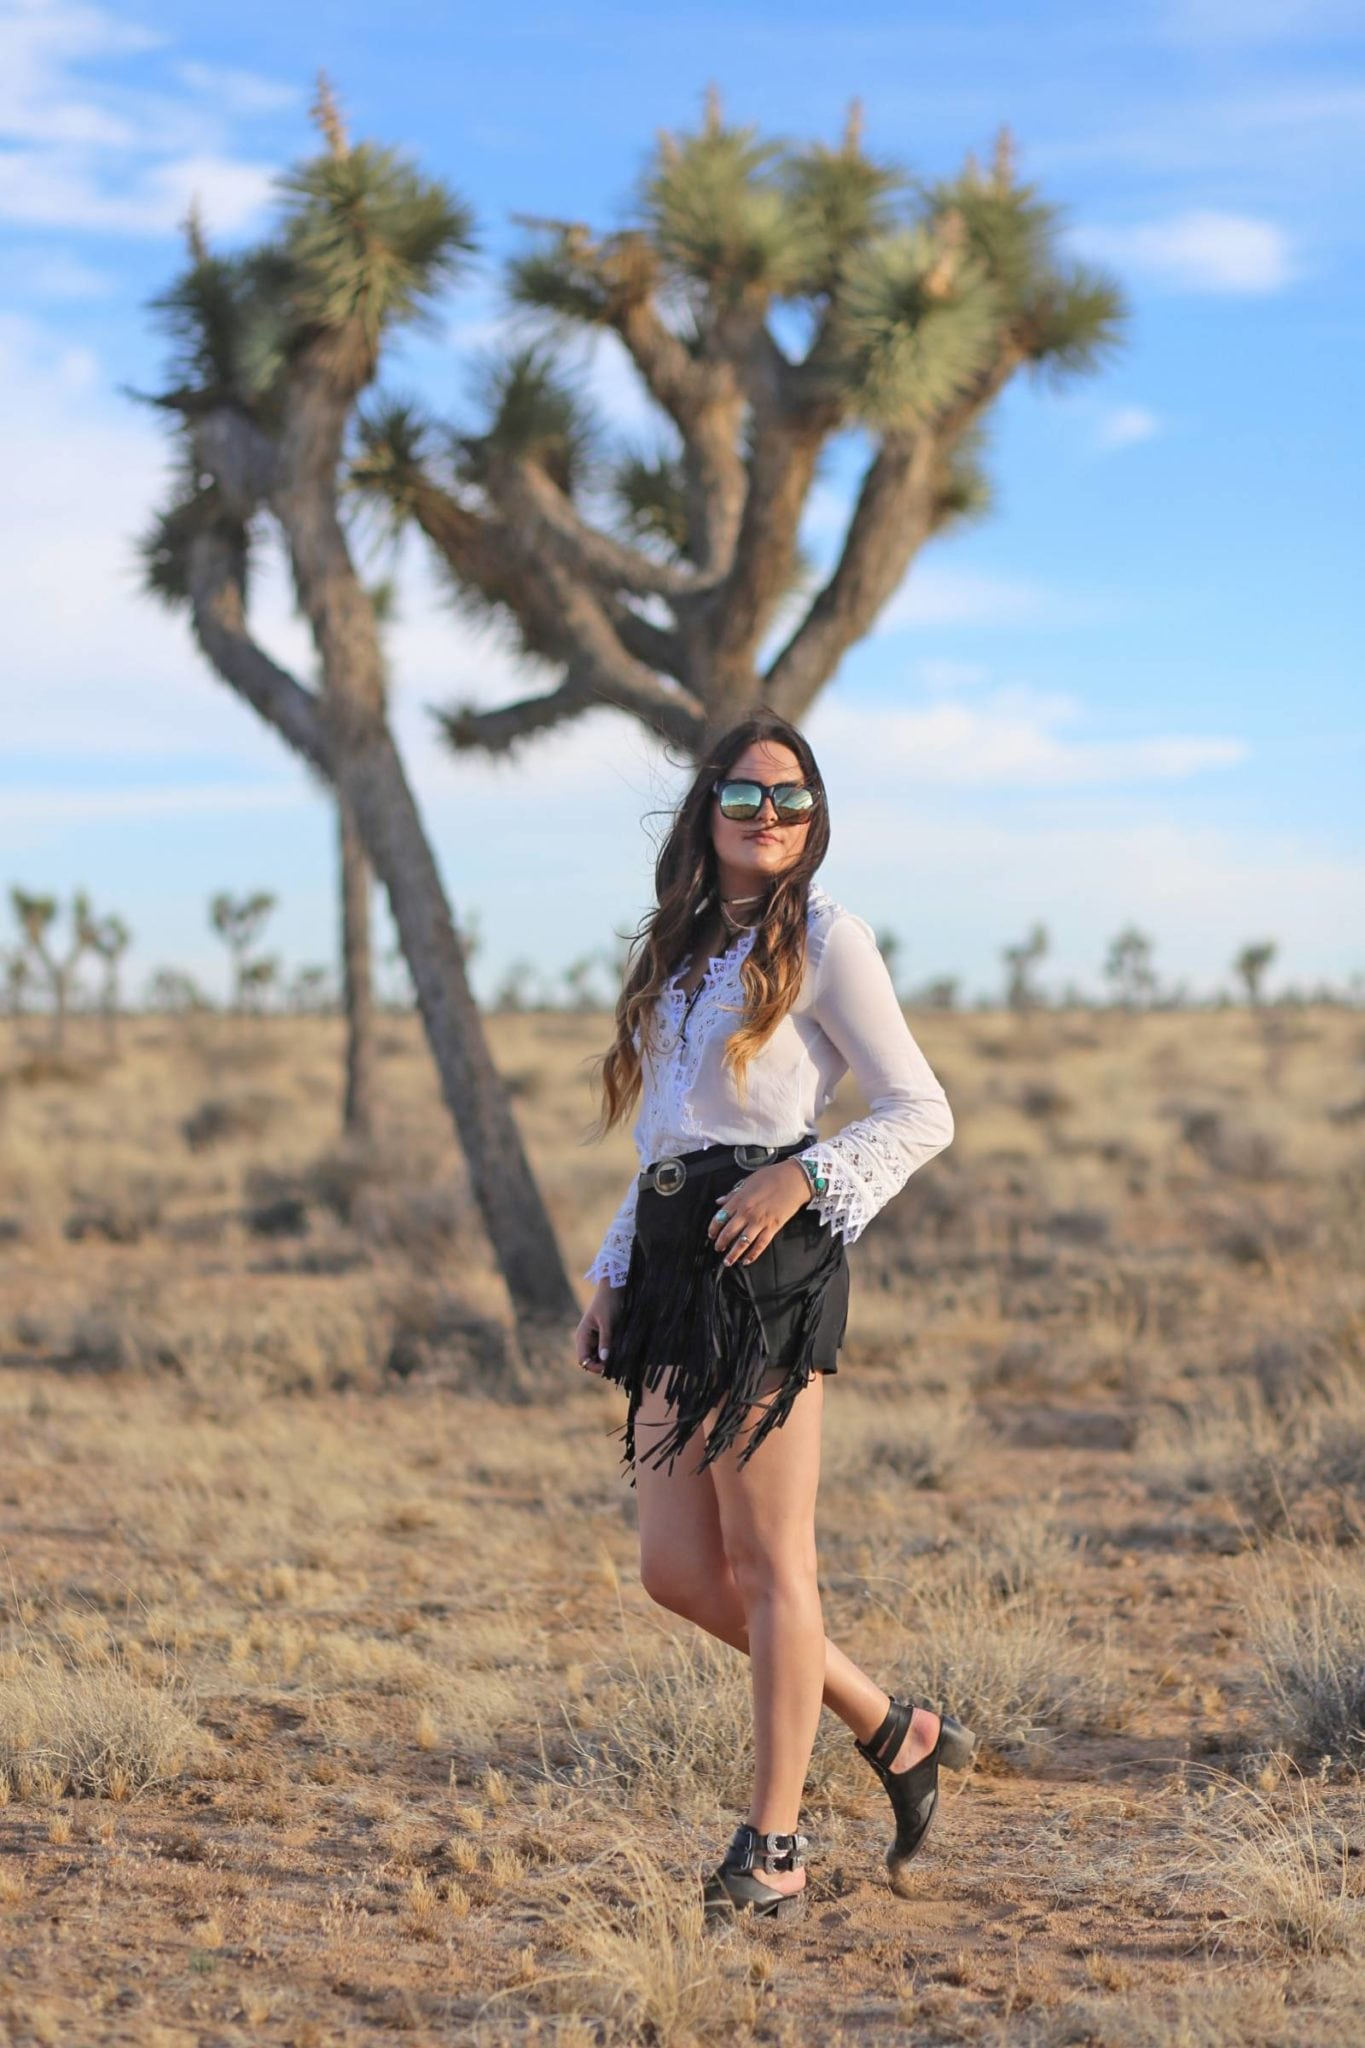 Mash Elle Joshua Tree National Park | Mash Elle lifestyle beauty blogger | Travel | boho fashion | festival fashion | California trip | travel California